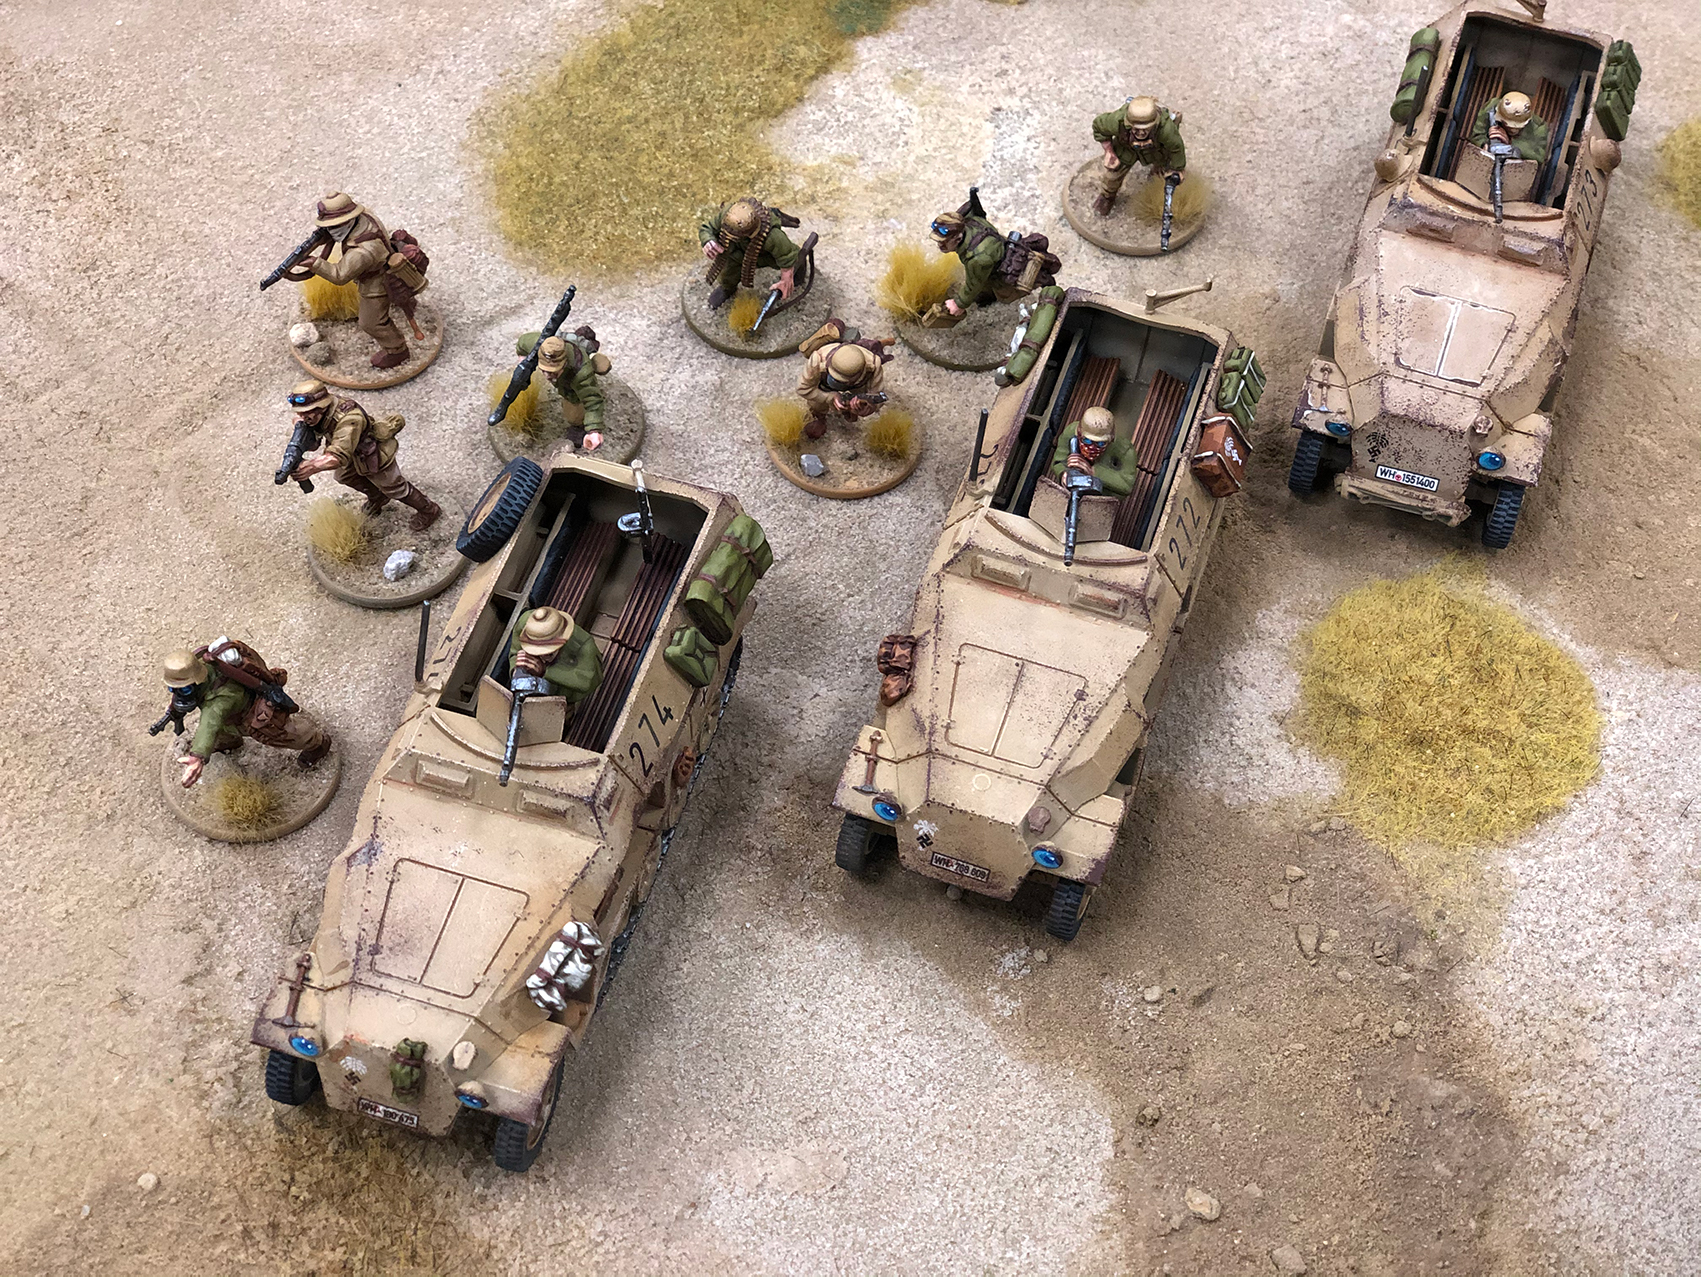 Mobility is key to this DAK army